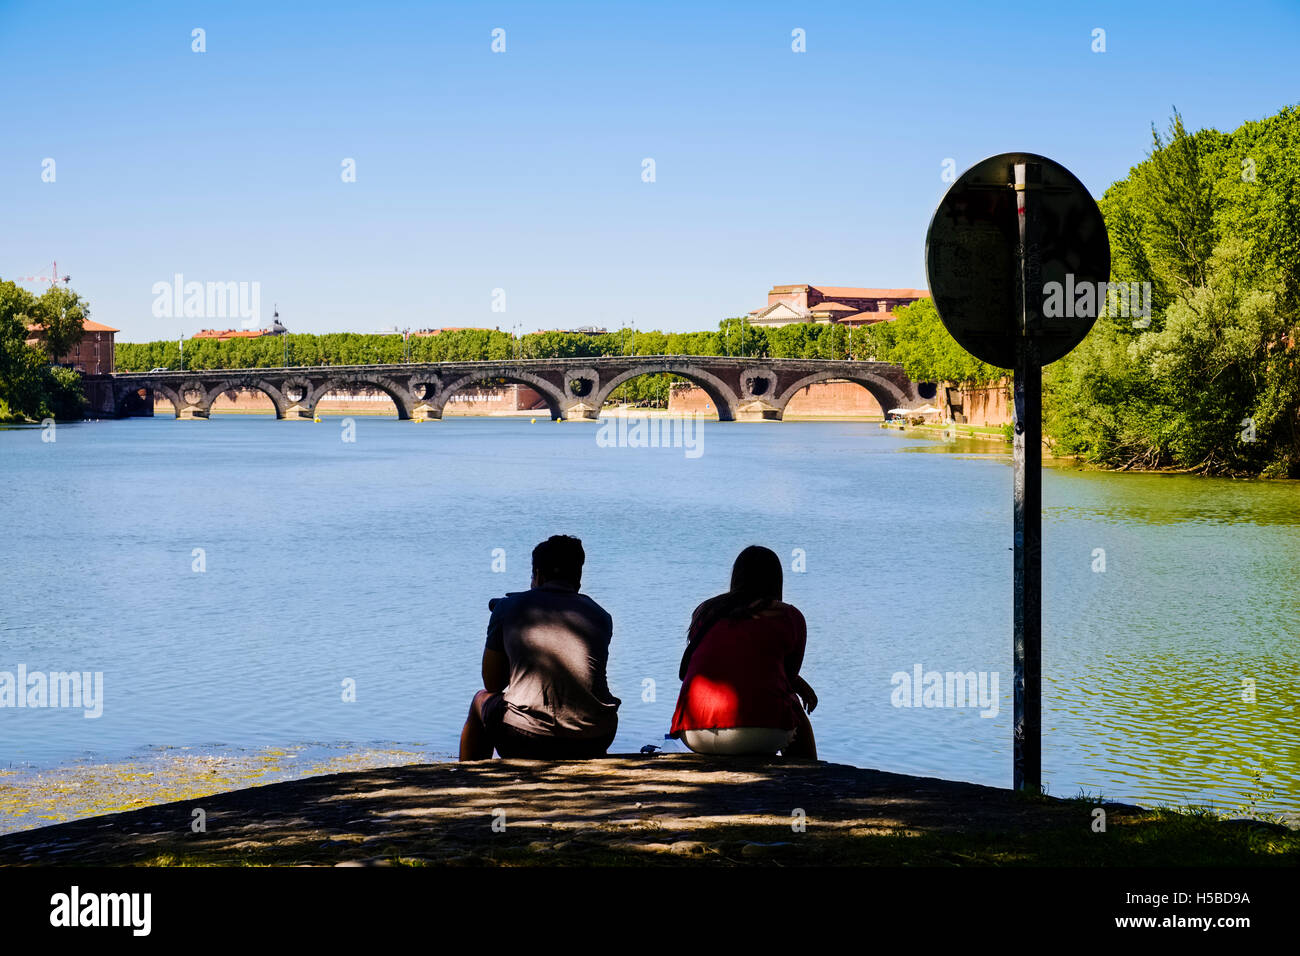 Ile du Ramier at River Garonne, Toulouse, France - Stock Image